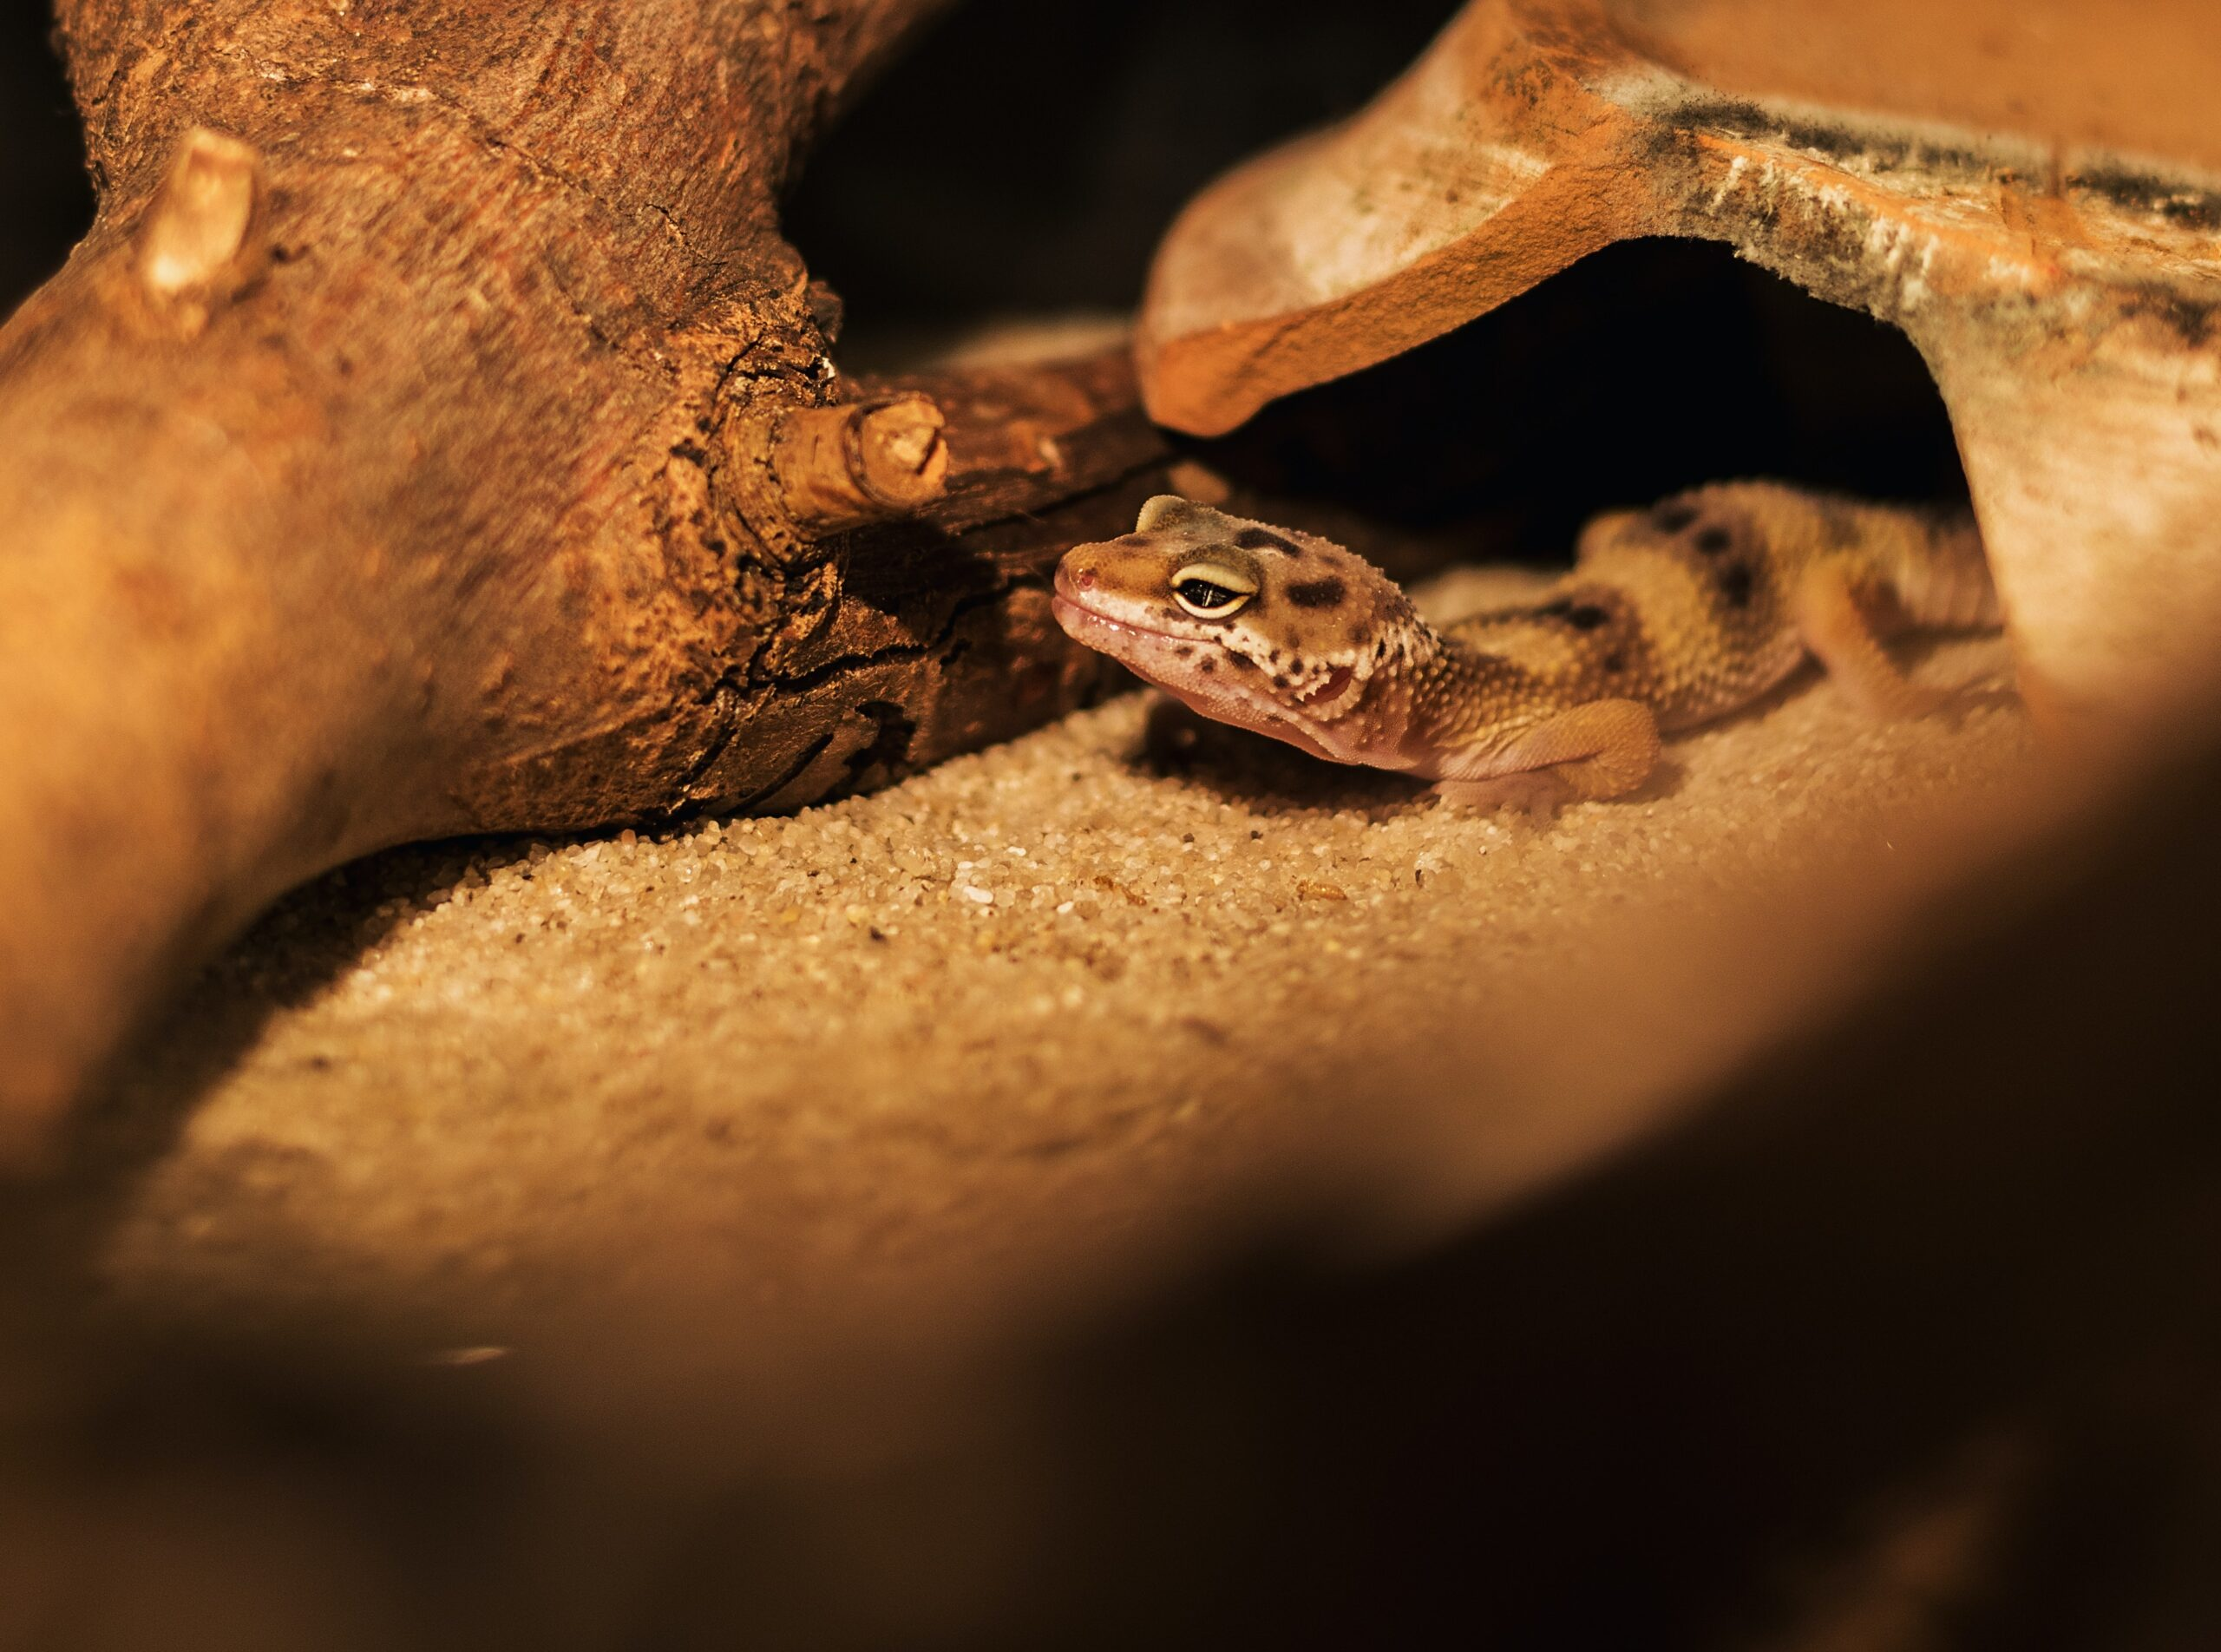 How long do leopard geckos sleep?